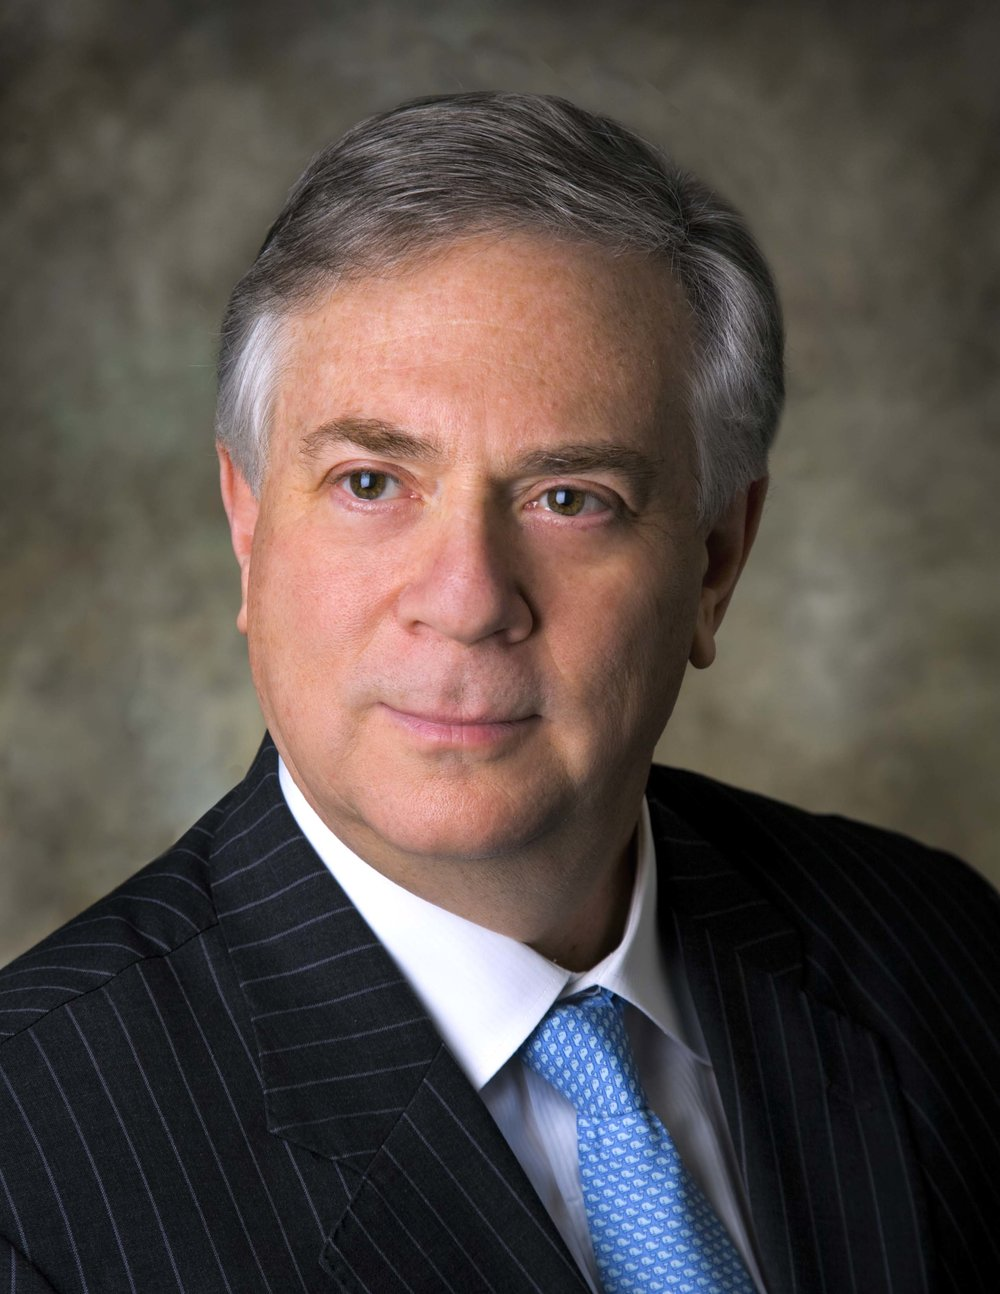 Ira Kaplan <br /> Executive Chairman and Partner <br/> Benesch Attorneys at Law